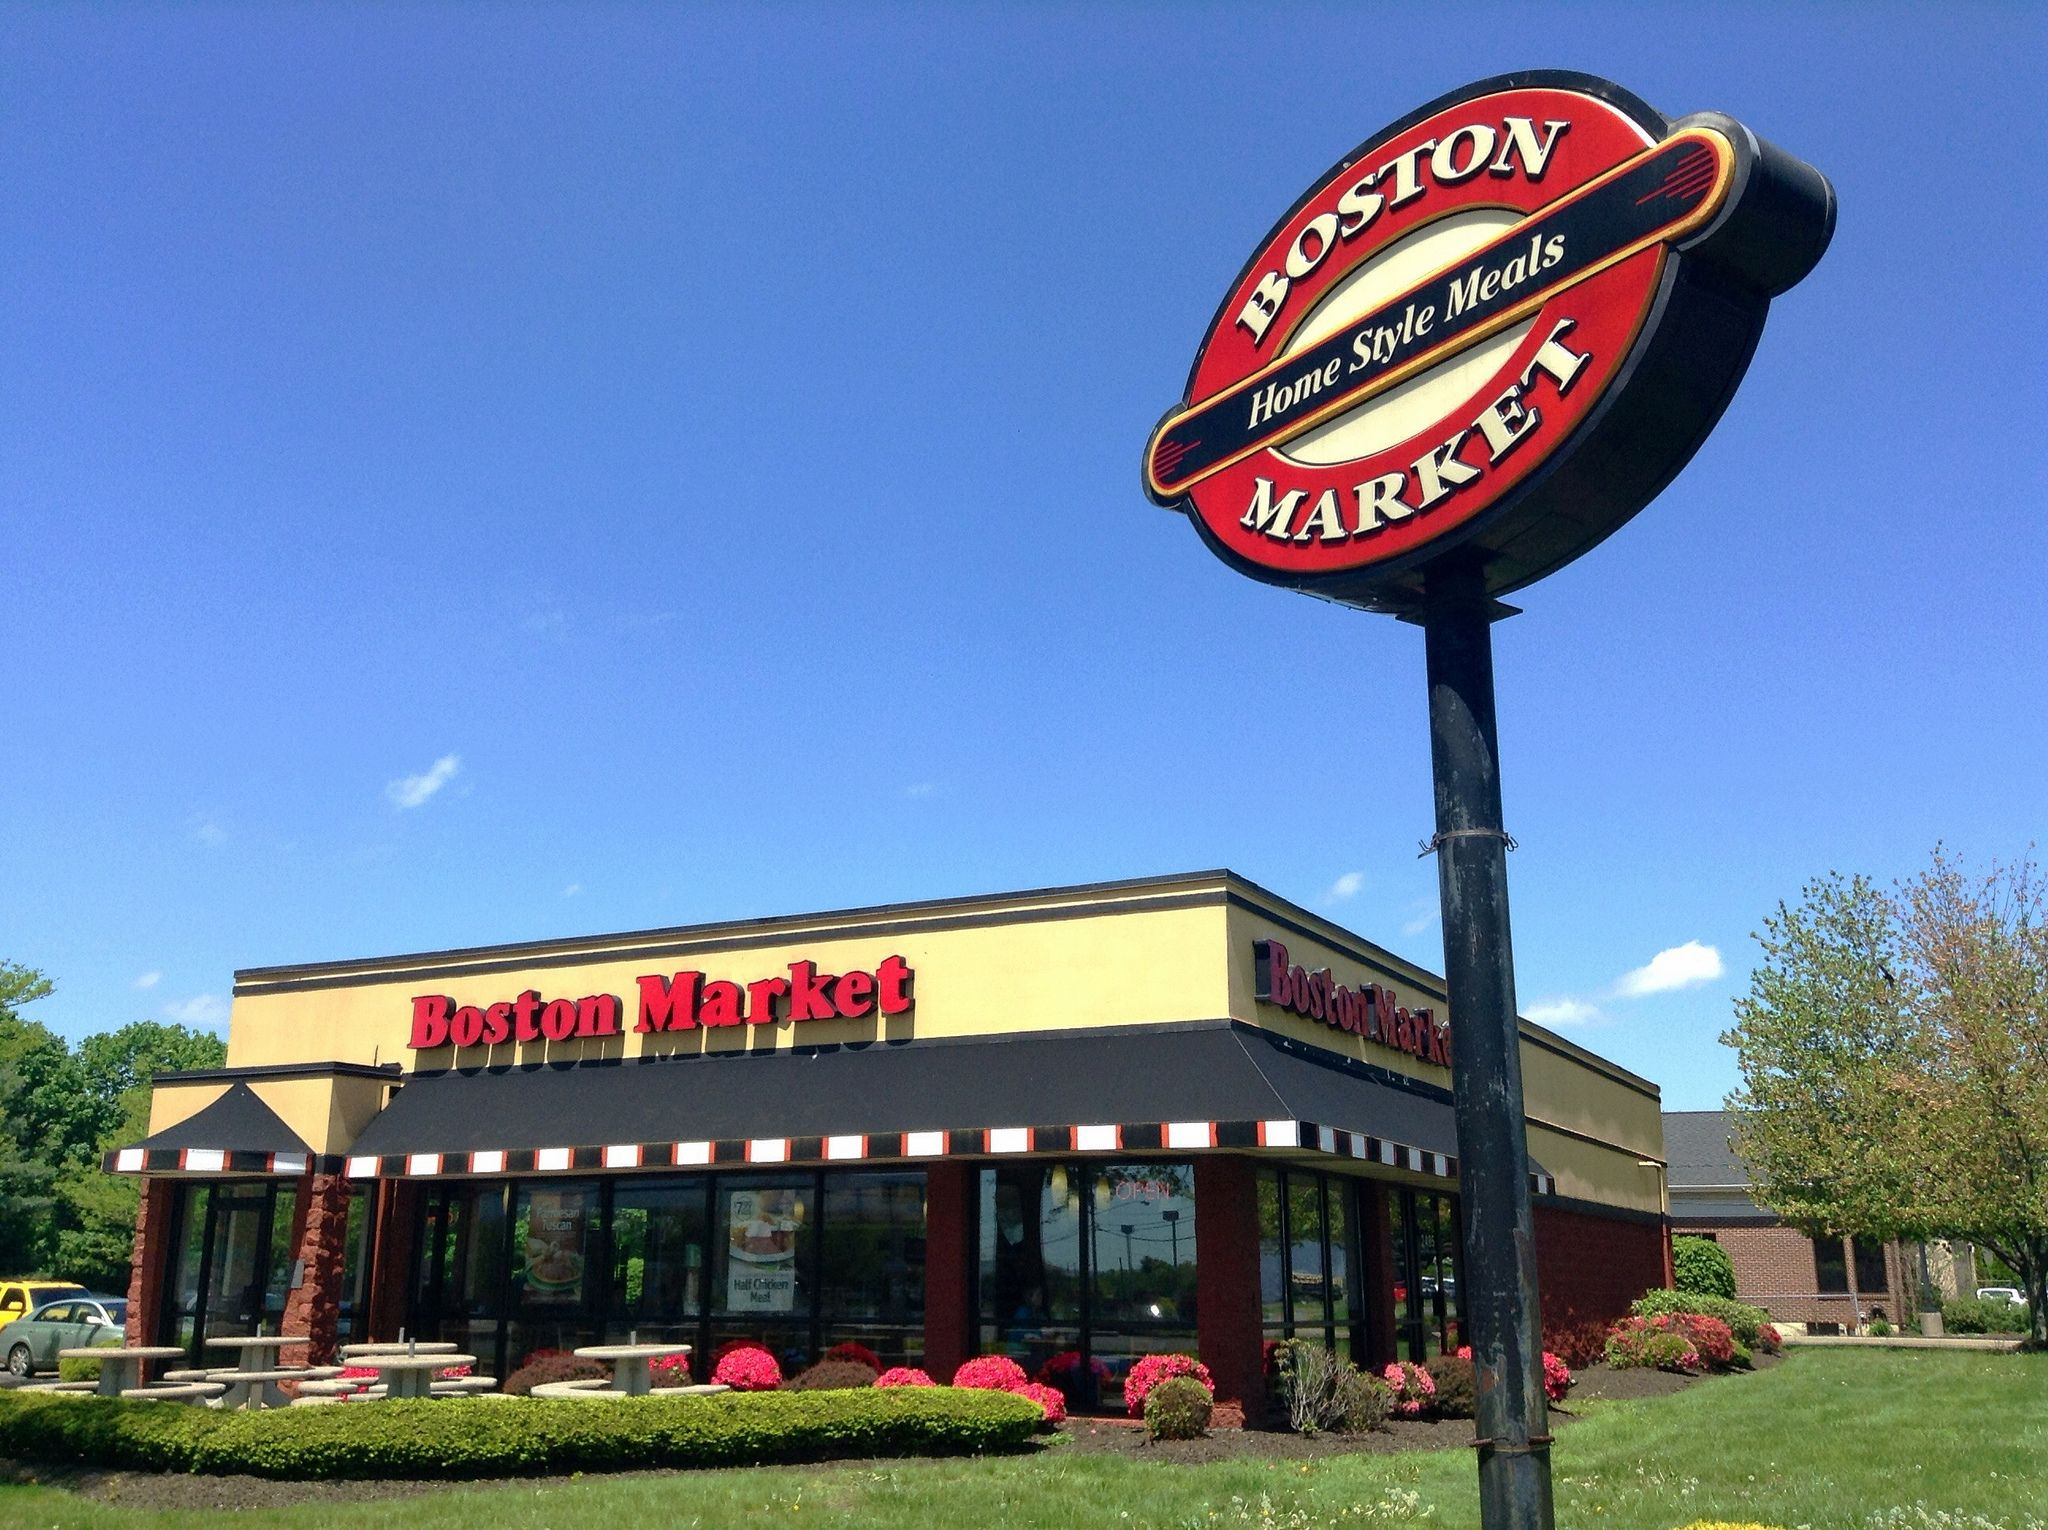 Restaurant Deals for Military Veterans - Discount Offers for Military  Members